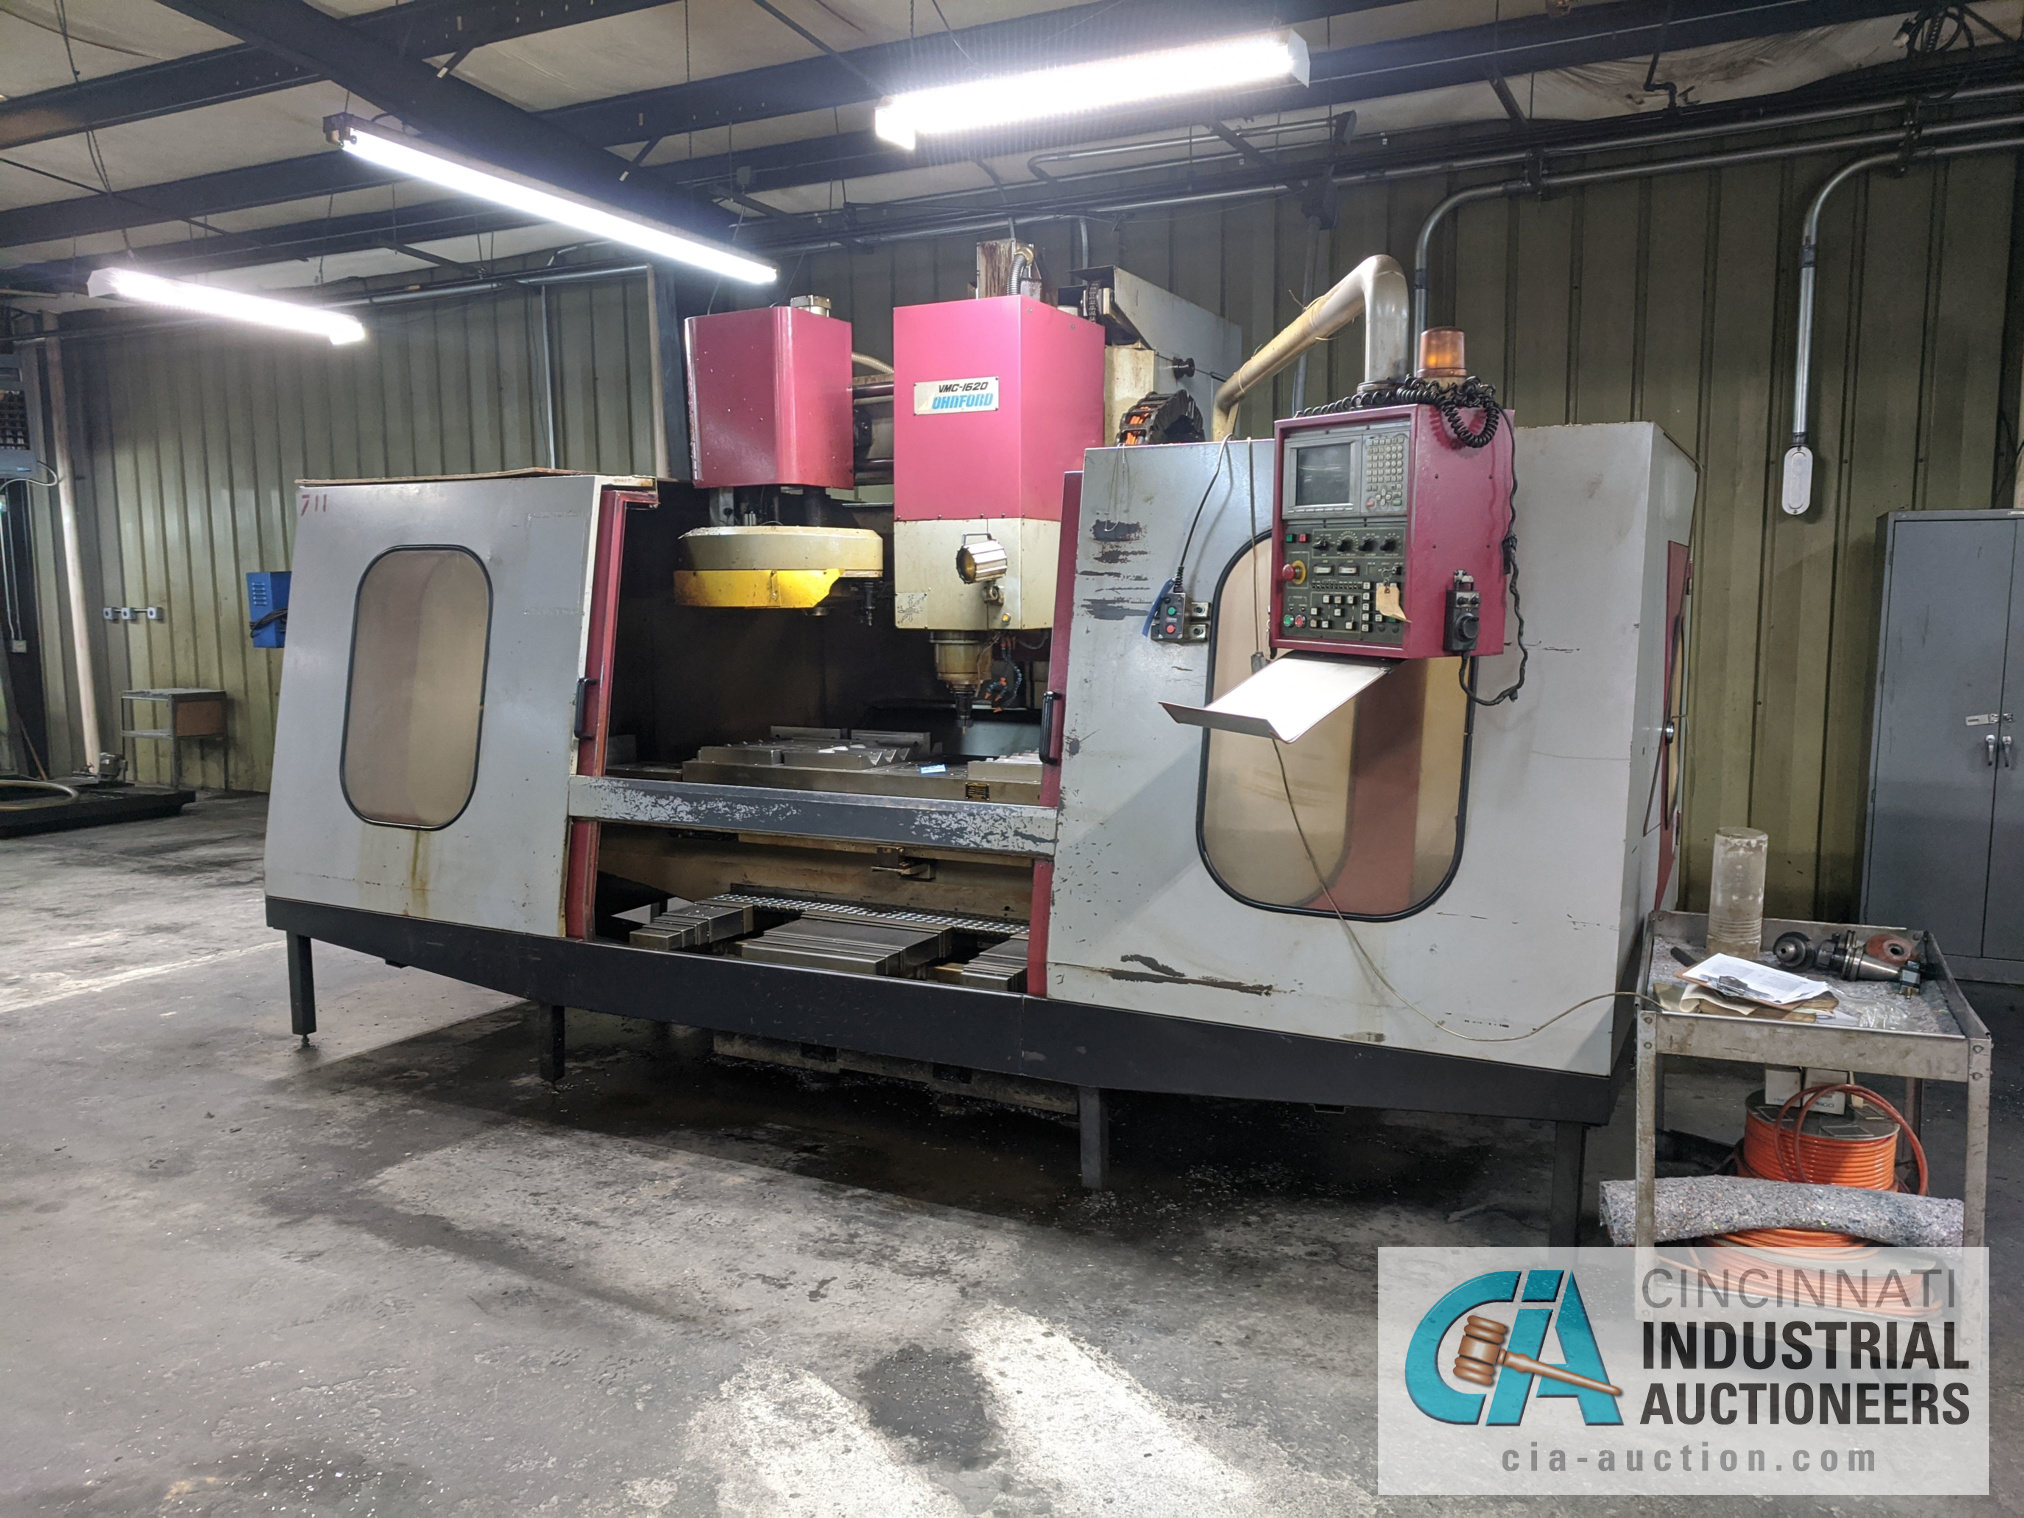 (Former lot 31) JOHNFORD MODEL VMC1620 CNC VMC; S/N F6052 (NEW 1996), Magnetic Chuck Not Included